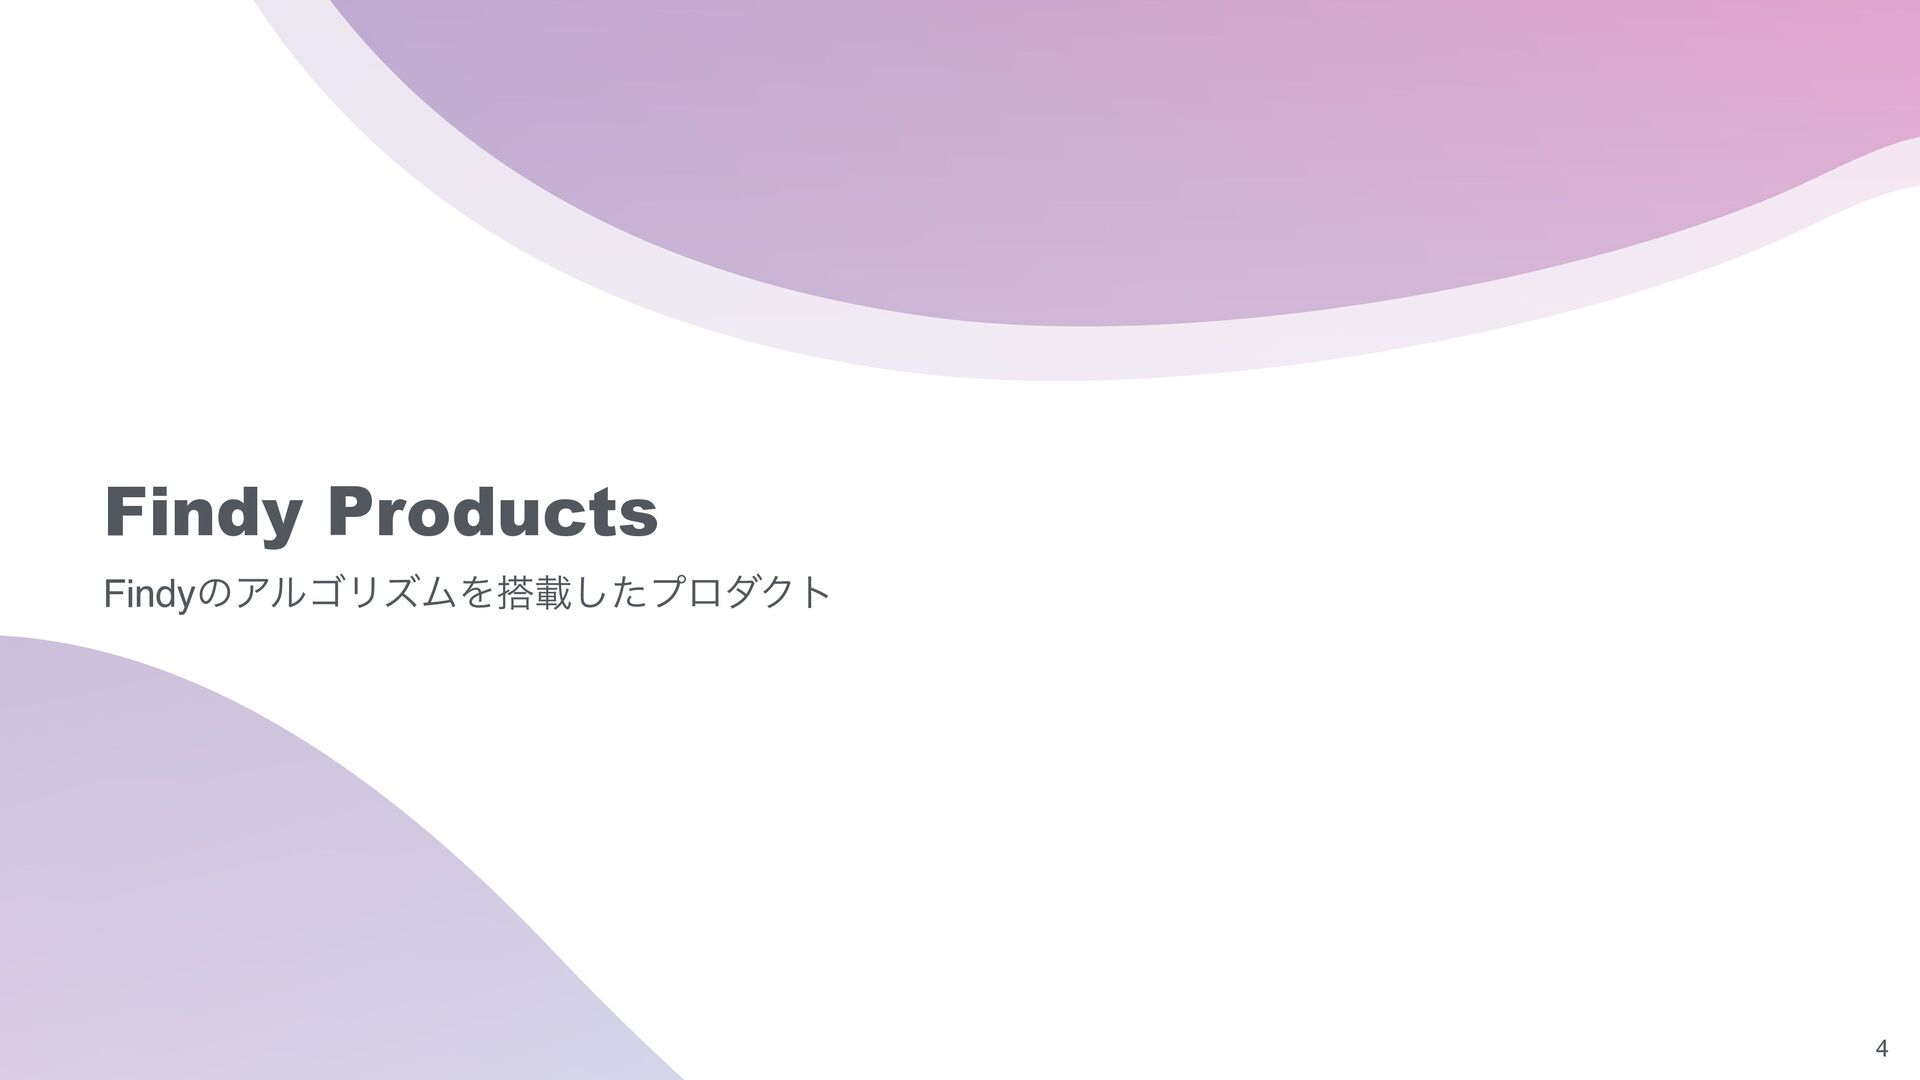 Findy Products Findyのアルゴリズムを搭載したプロダクト 4